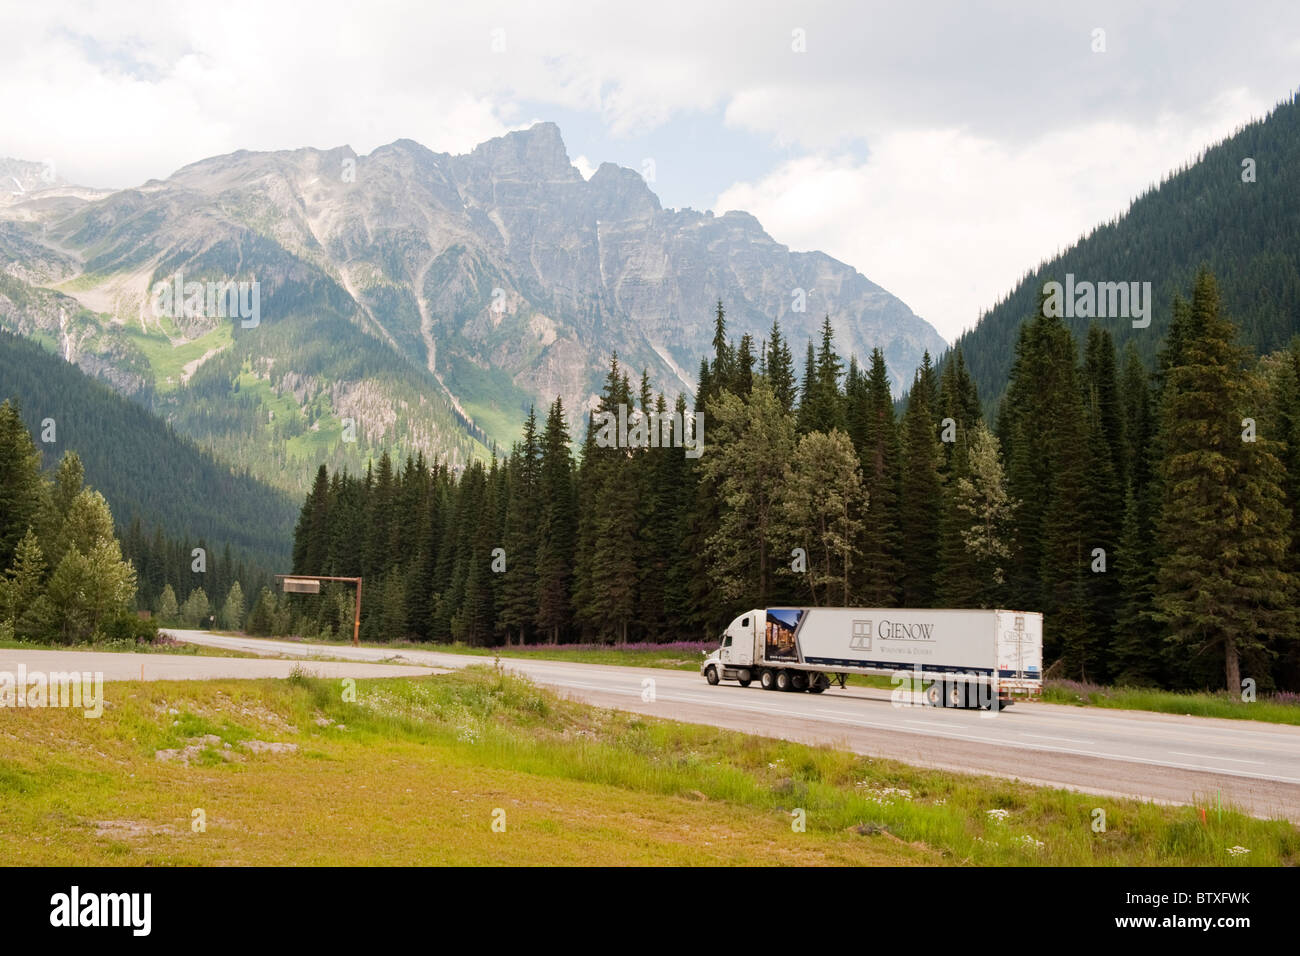 Rogers Pass Summit, at Glacier National Park Information Centre, Trans-Canada Highway British Columbia, Canada - Stock Image